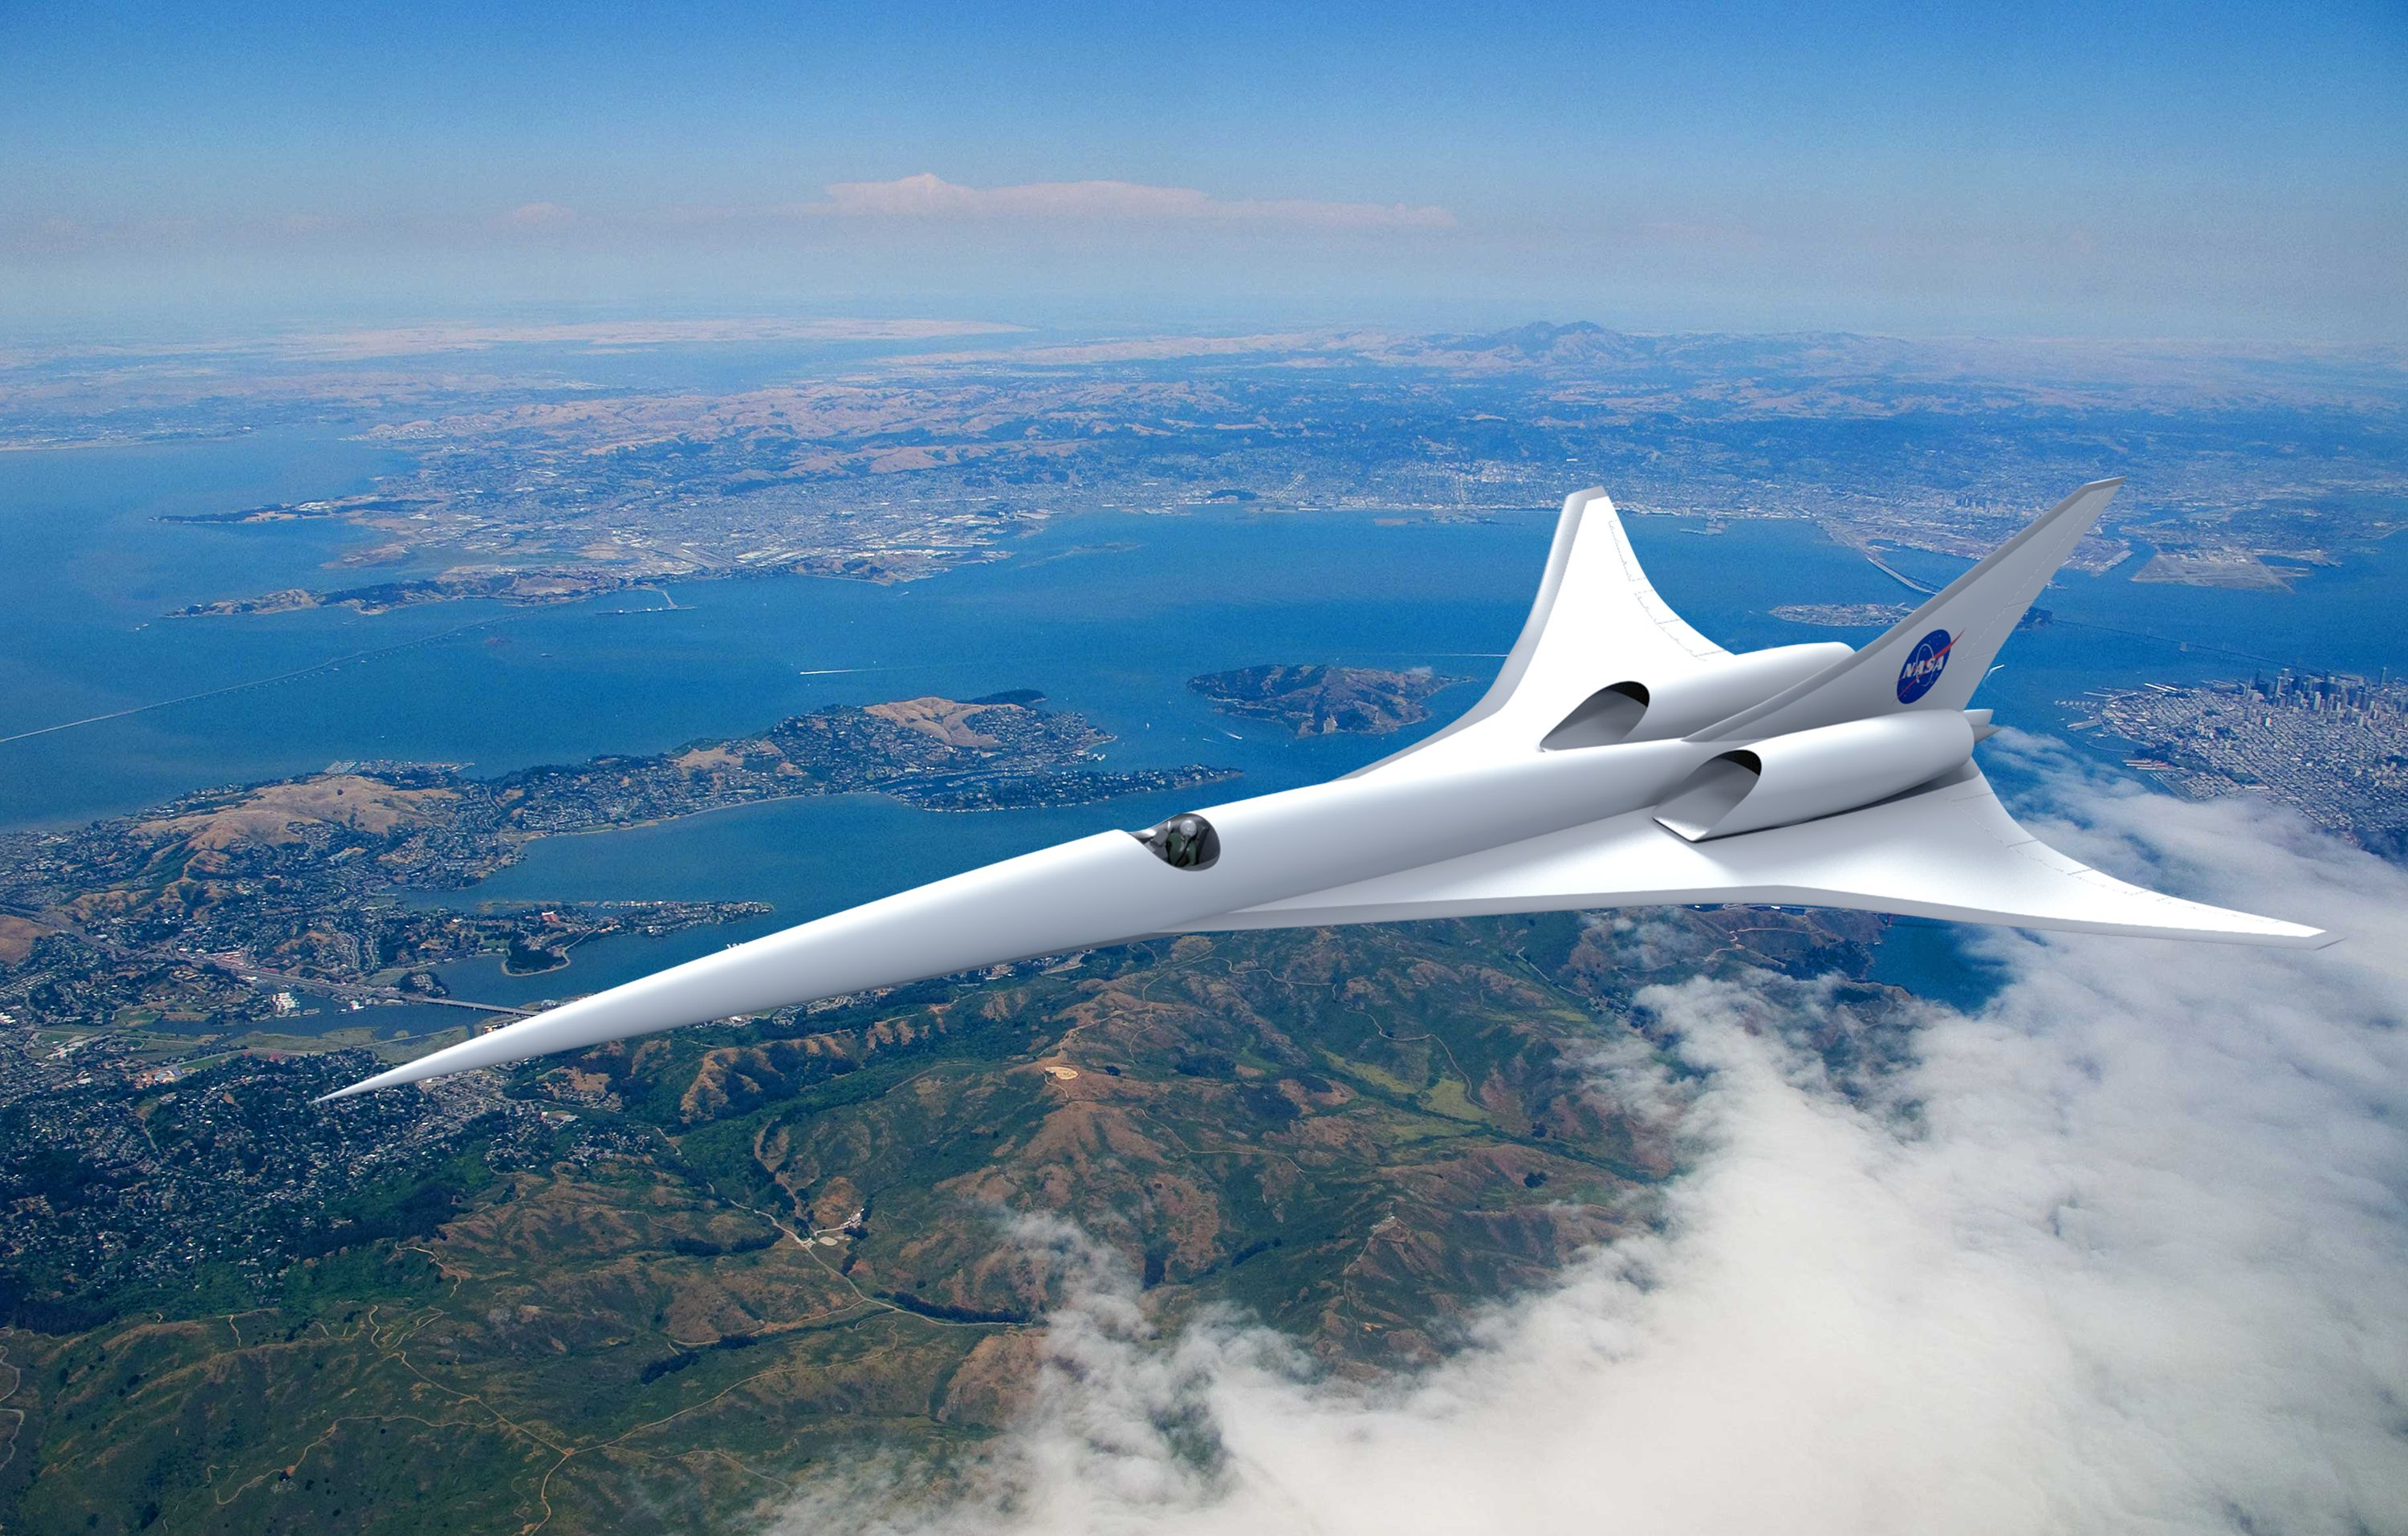 Nasa Invests In Future Of Aviation With Supersonic Research Aircraft Nasa Supersonic Aircraft